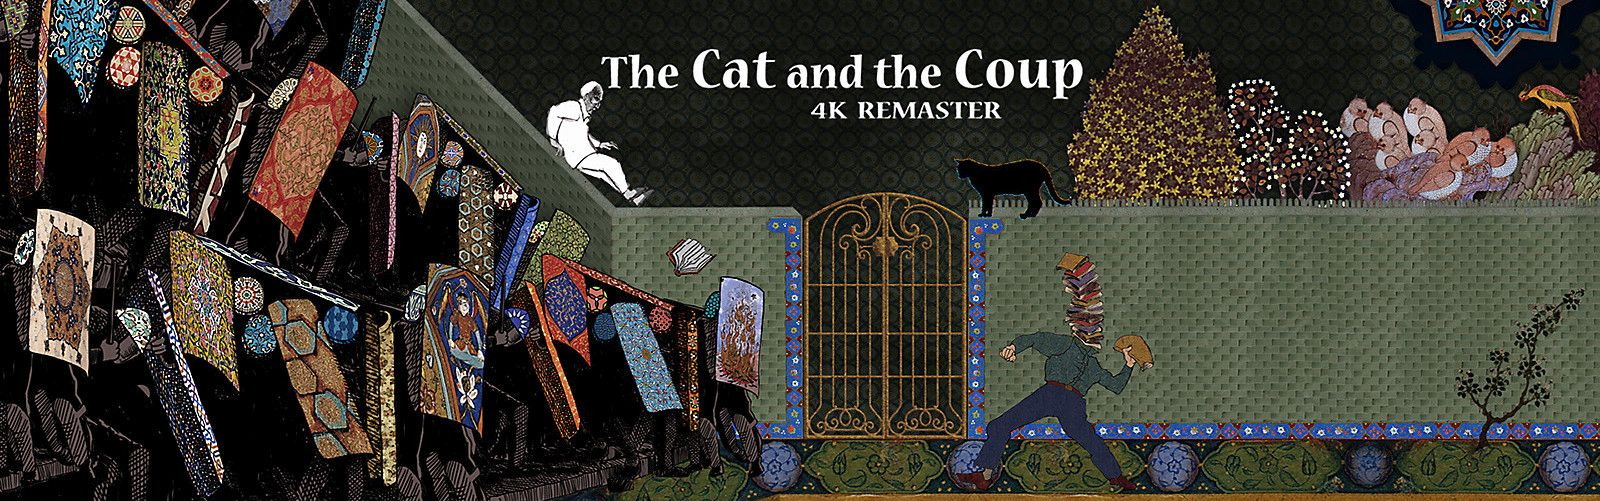 The Cat and the Coup (4K Remaster) Steam Key GLOBAL